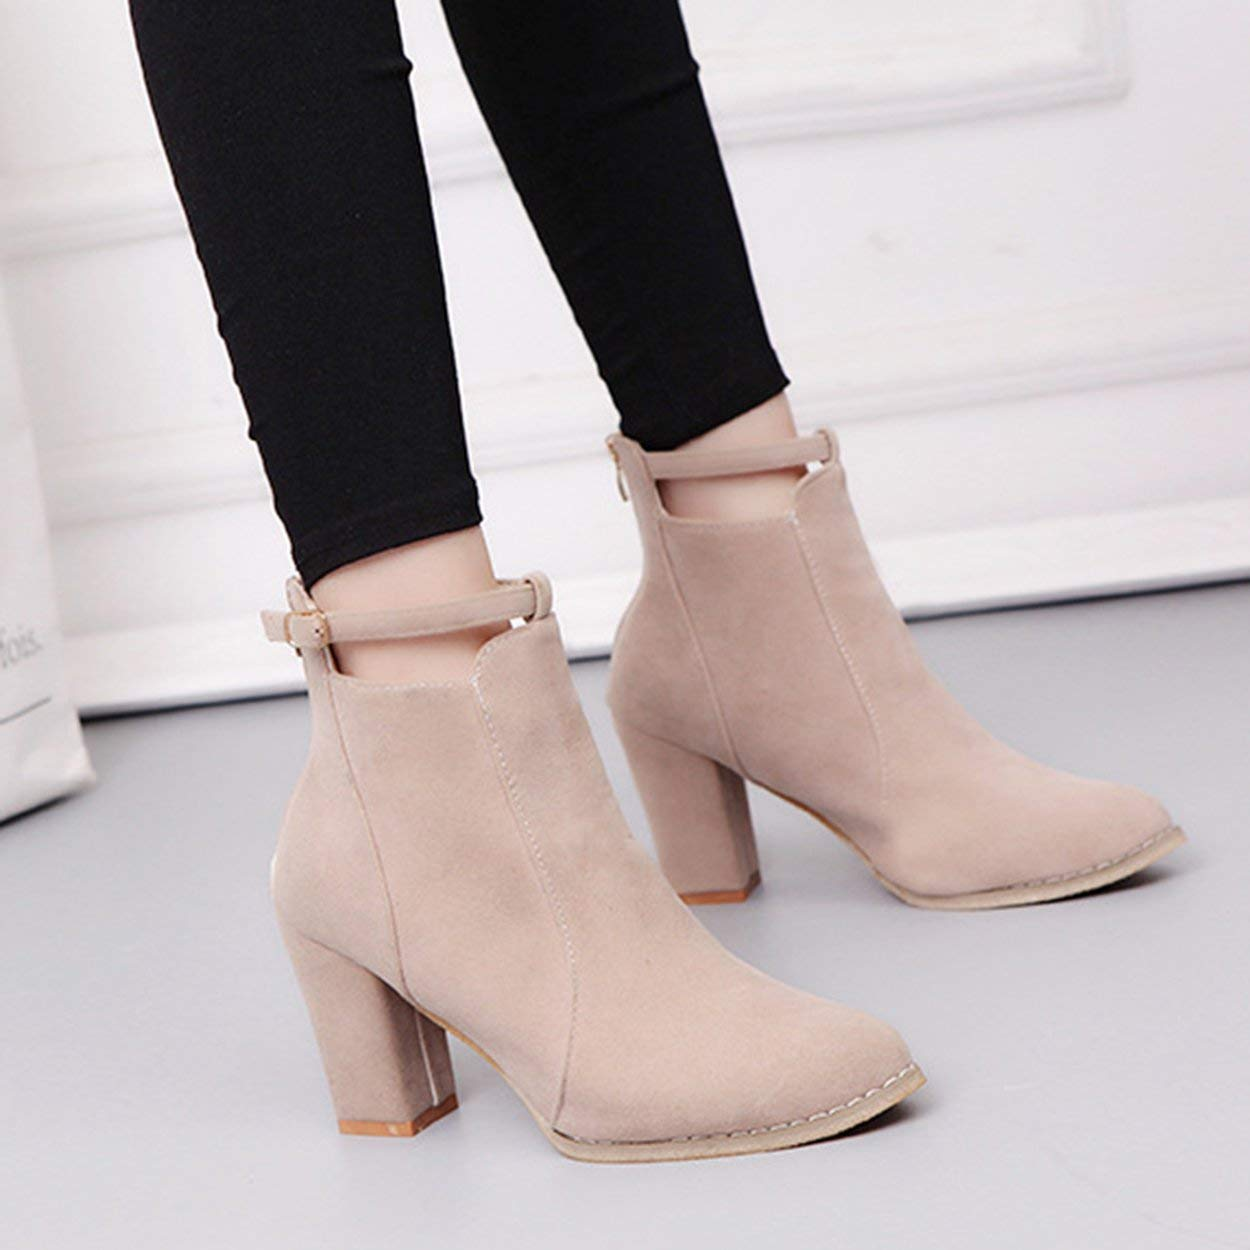 Boots Winter Womens Shoes Suede Boots High Heeled Pointy Martin Boots